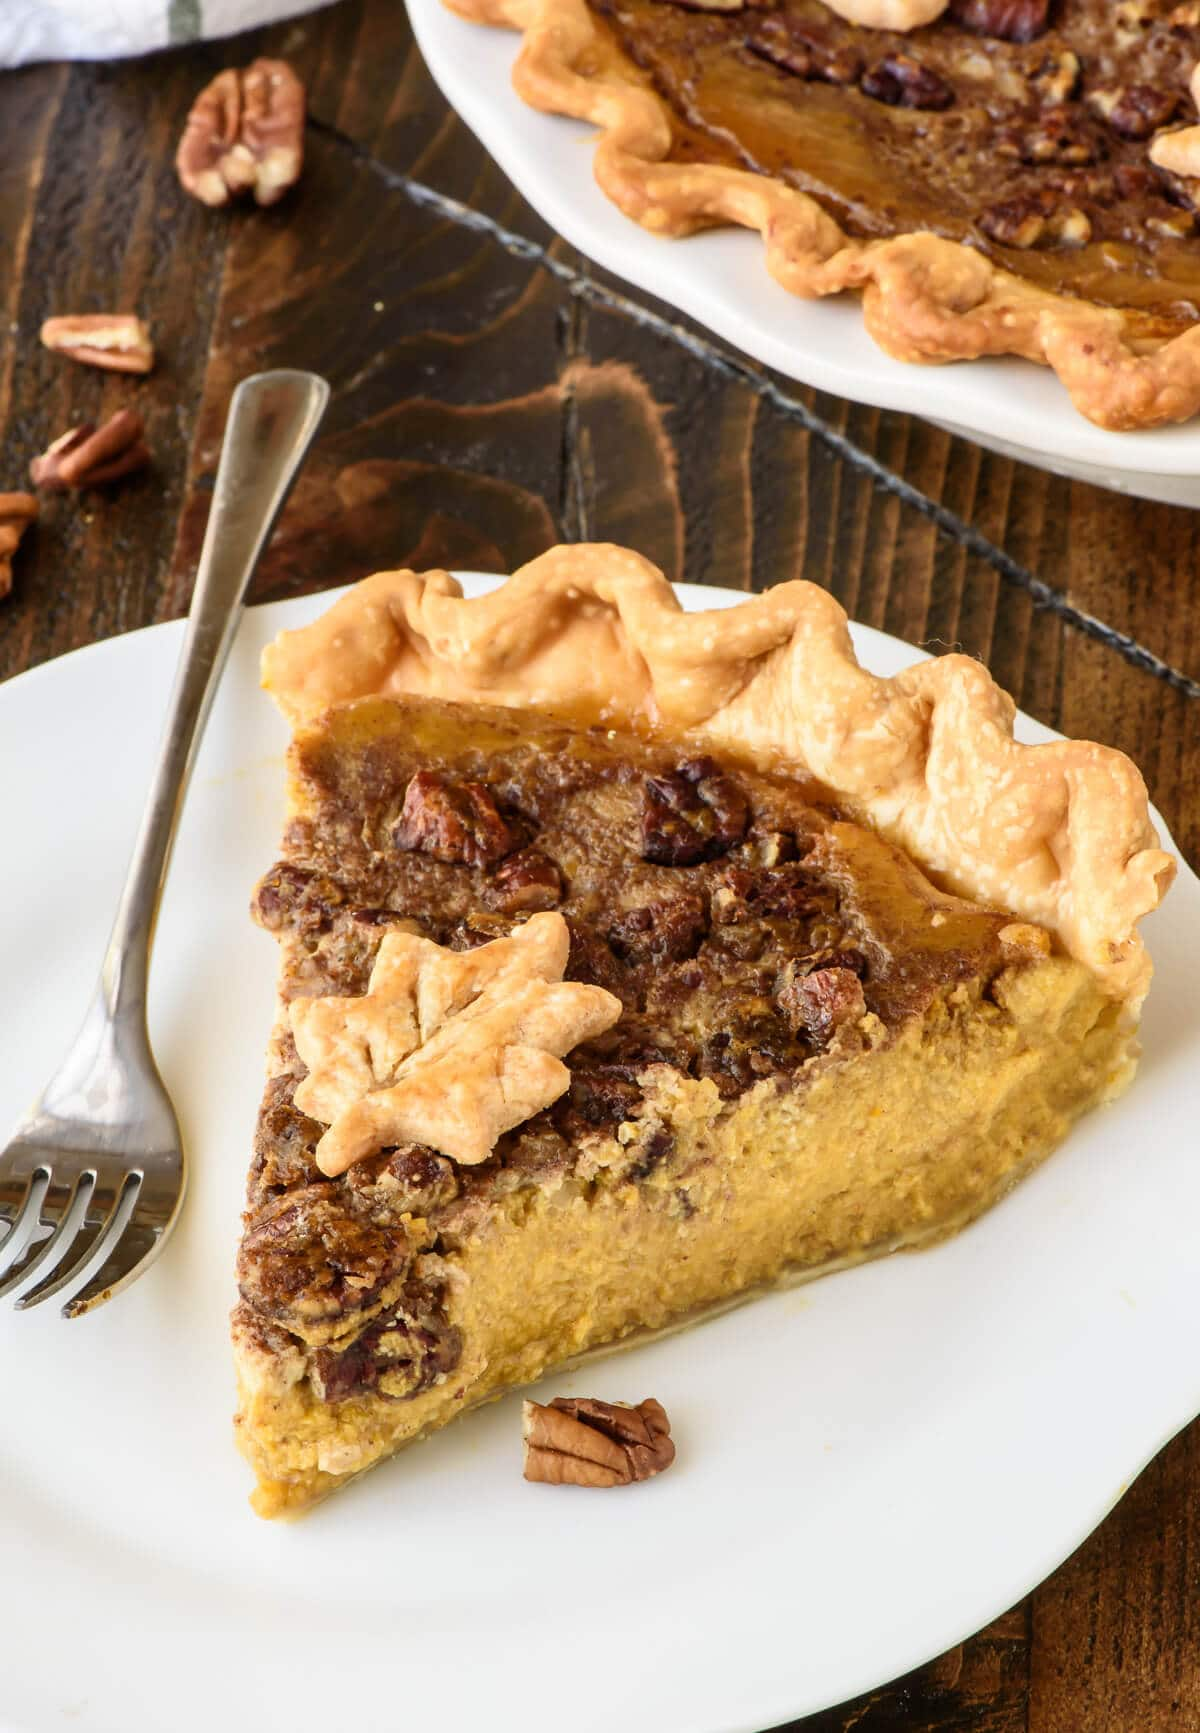 Perfect Pumpkin Pecan Pie. The best of pumpkin pie and pecan pie rolled into one, plus how to bake perfect pumpkin pie that won't crack or burn!